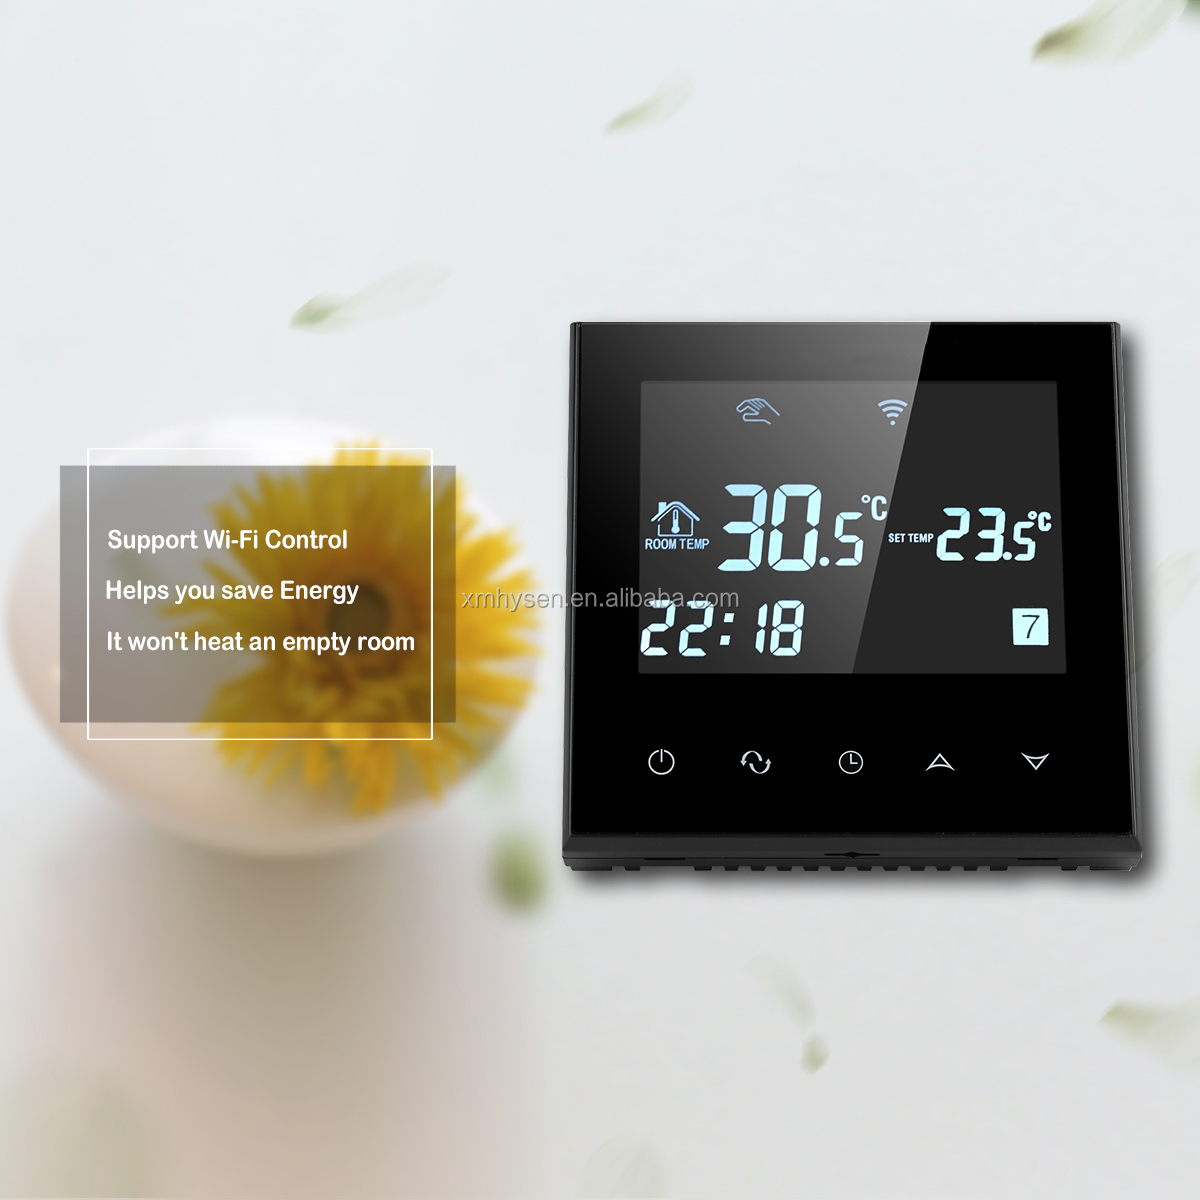 HY03WE-4-wifi Smart Heating Room Thermostats with WiFi Remote Control